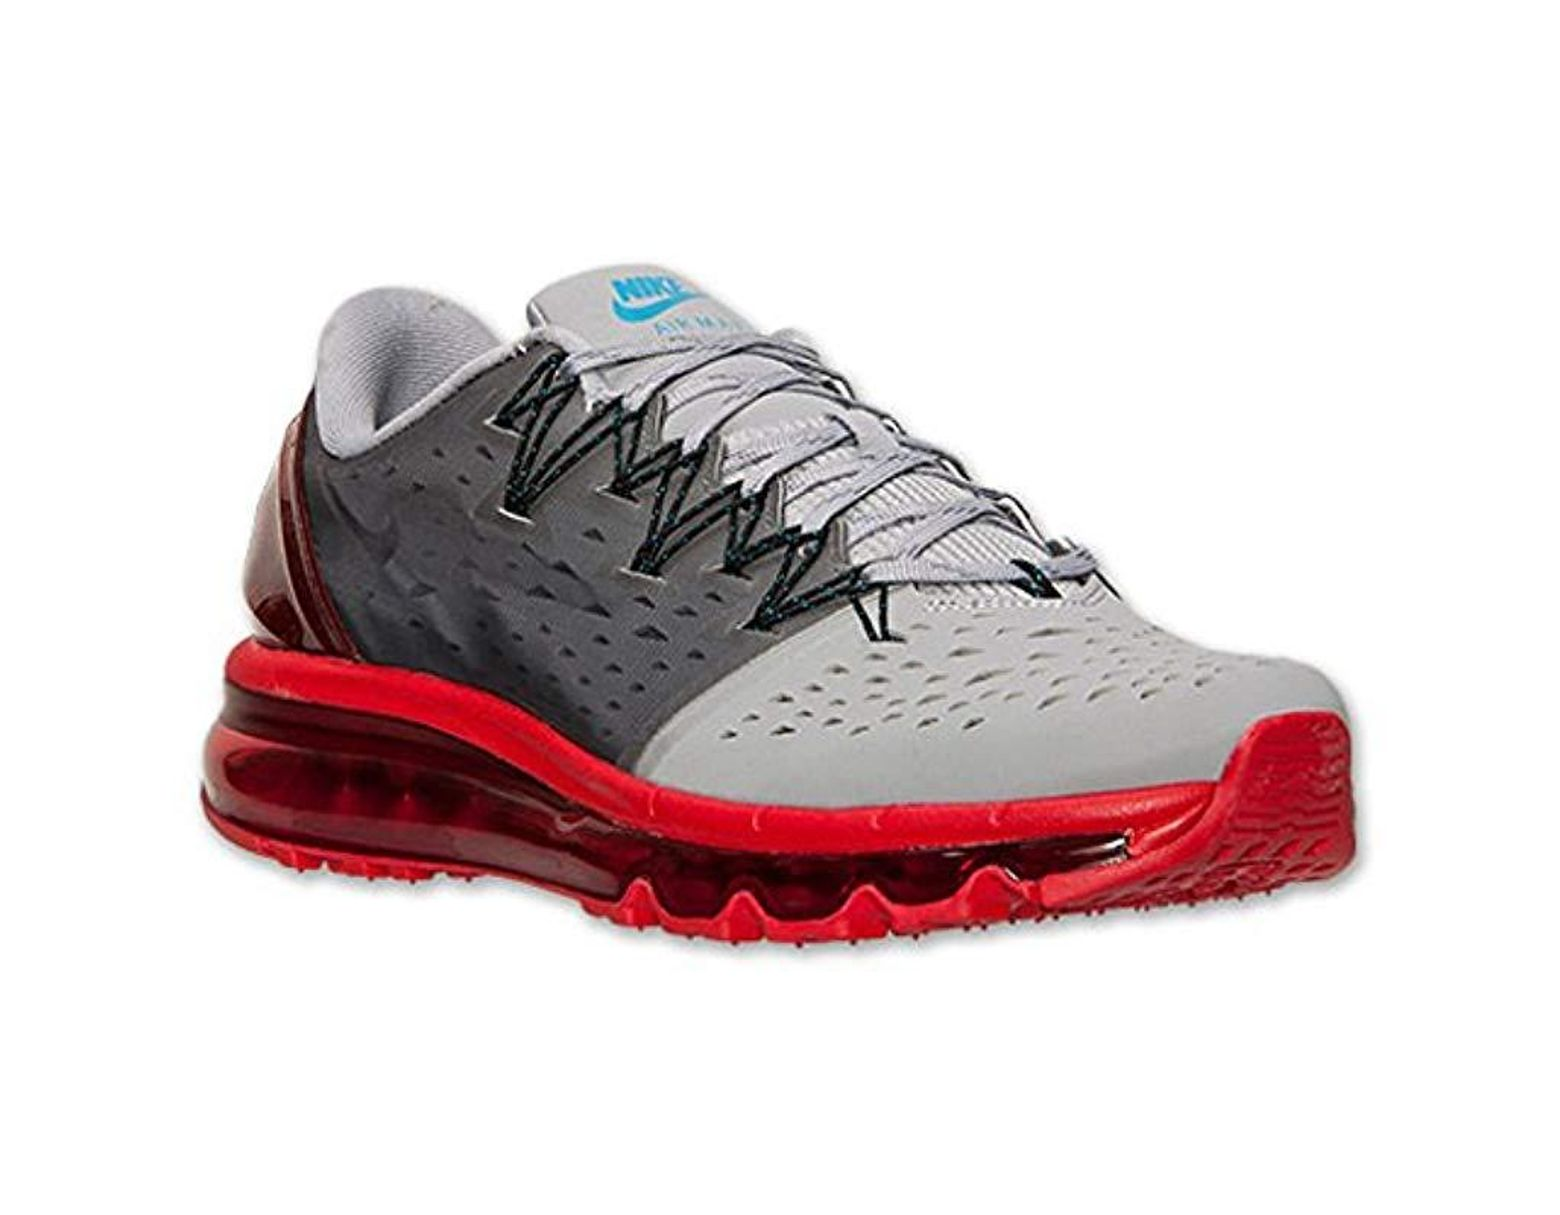 Nike S 707319 002 Air Max Pacfly Greyred 707319 002 for Men